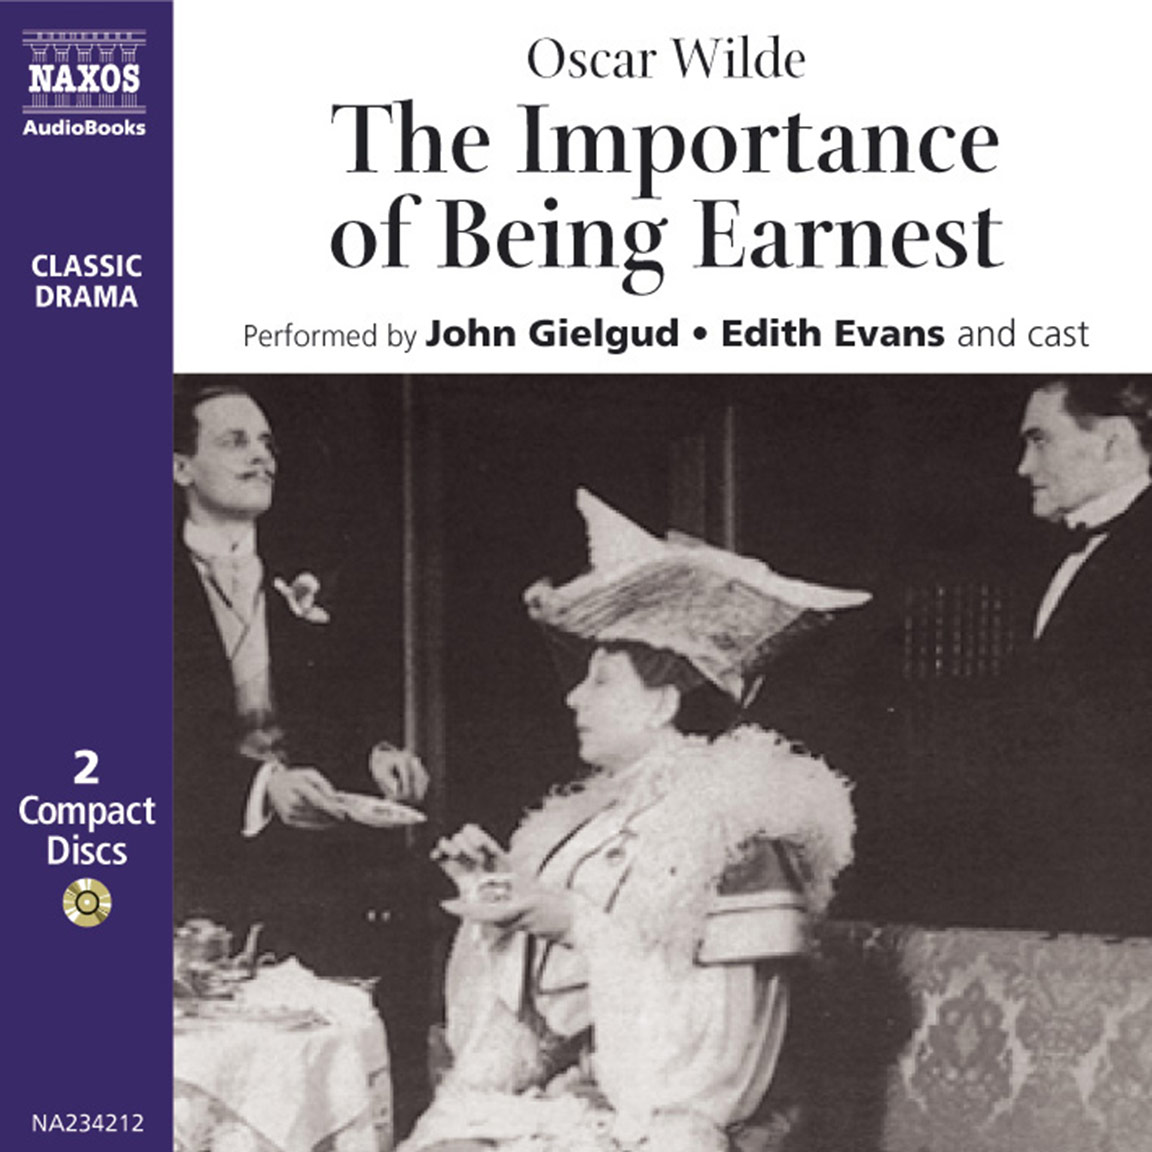 A Satire on the Victorian Age in The Importance of Being Earnest